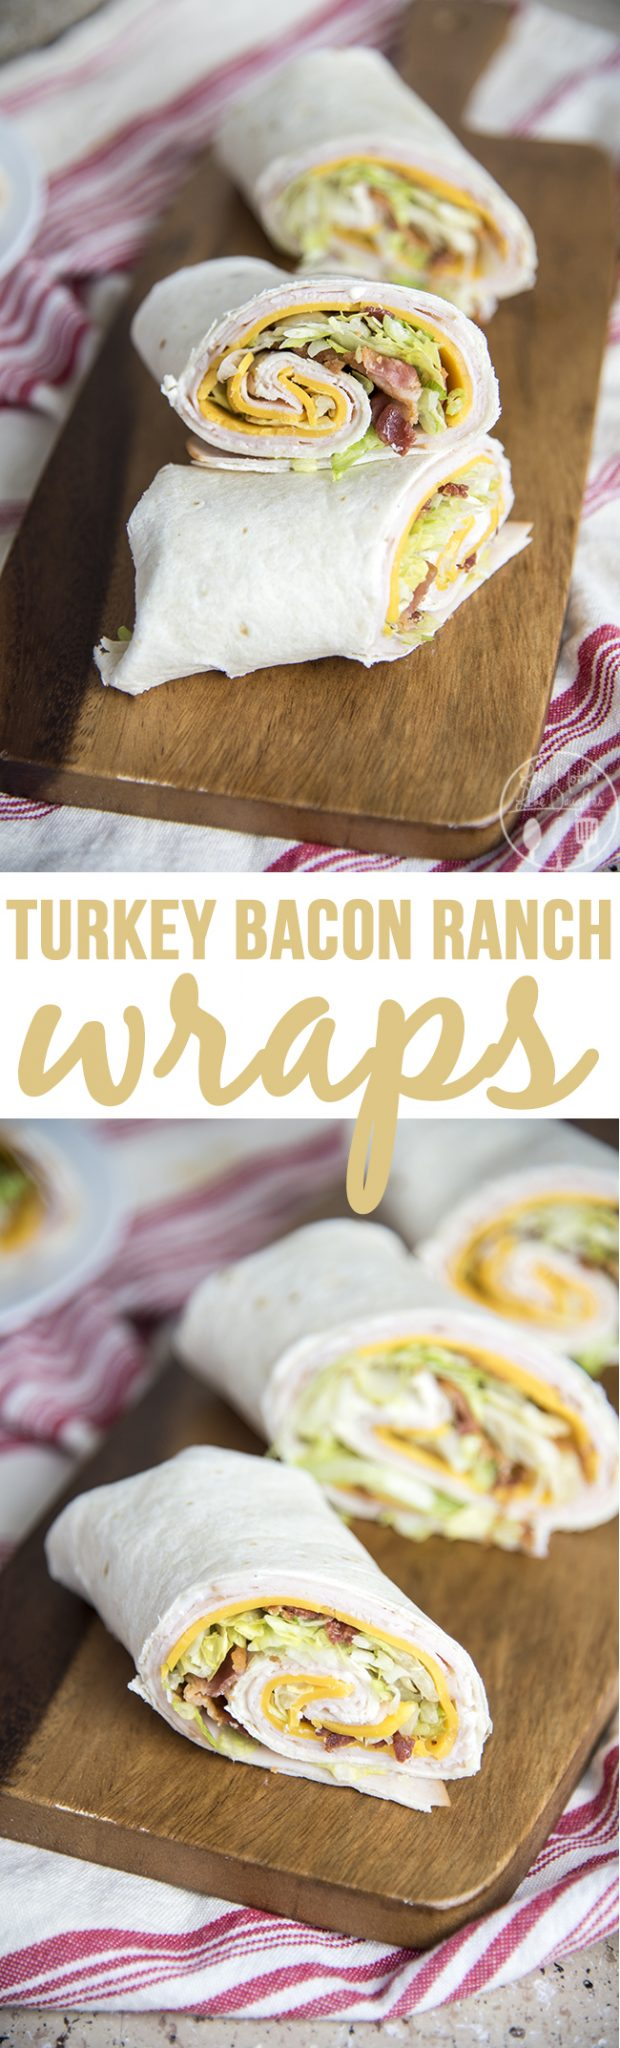 Turkey Bacon Ranch Wraps - These turkey bacon ranch wraps are such an easy and delicious lunch or dinner!